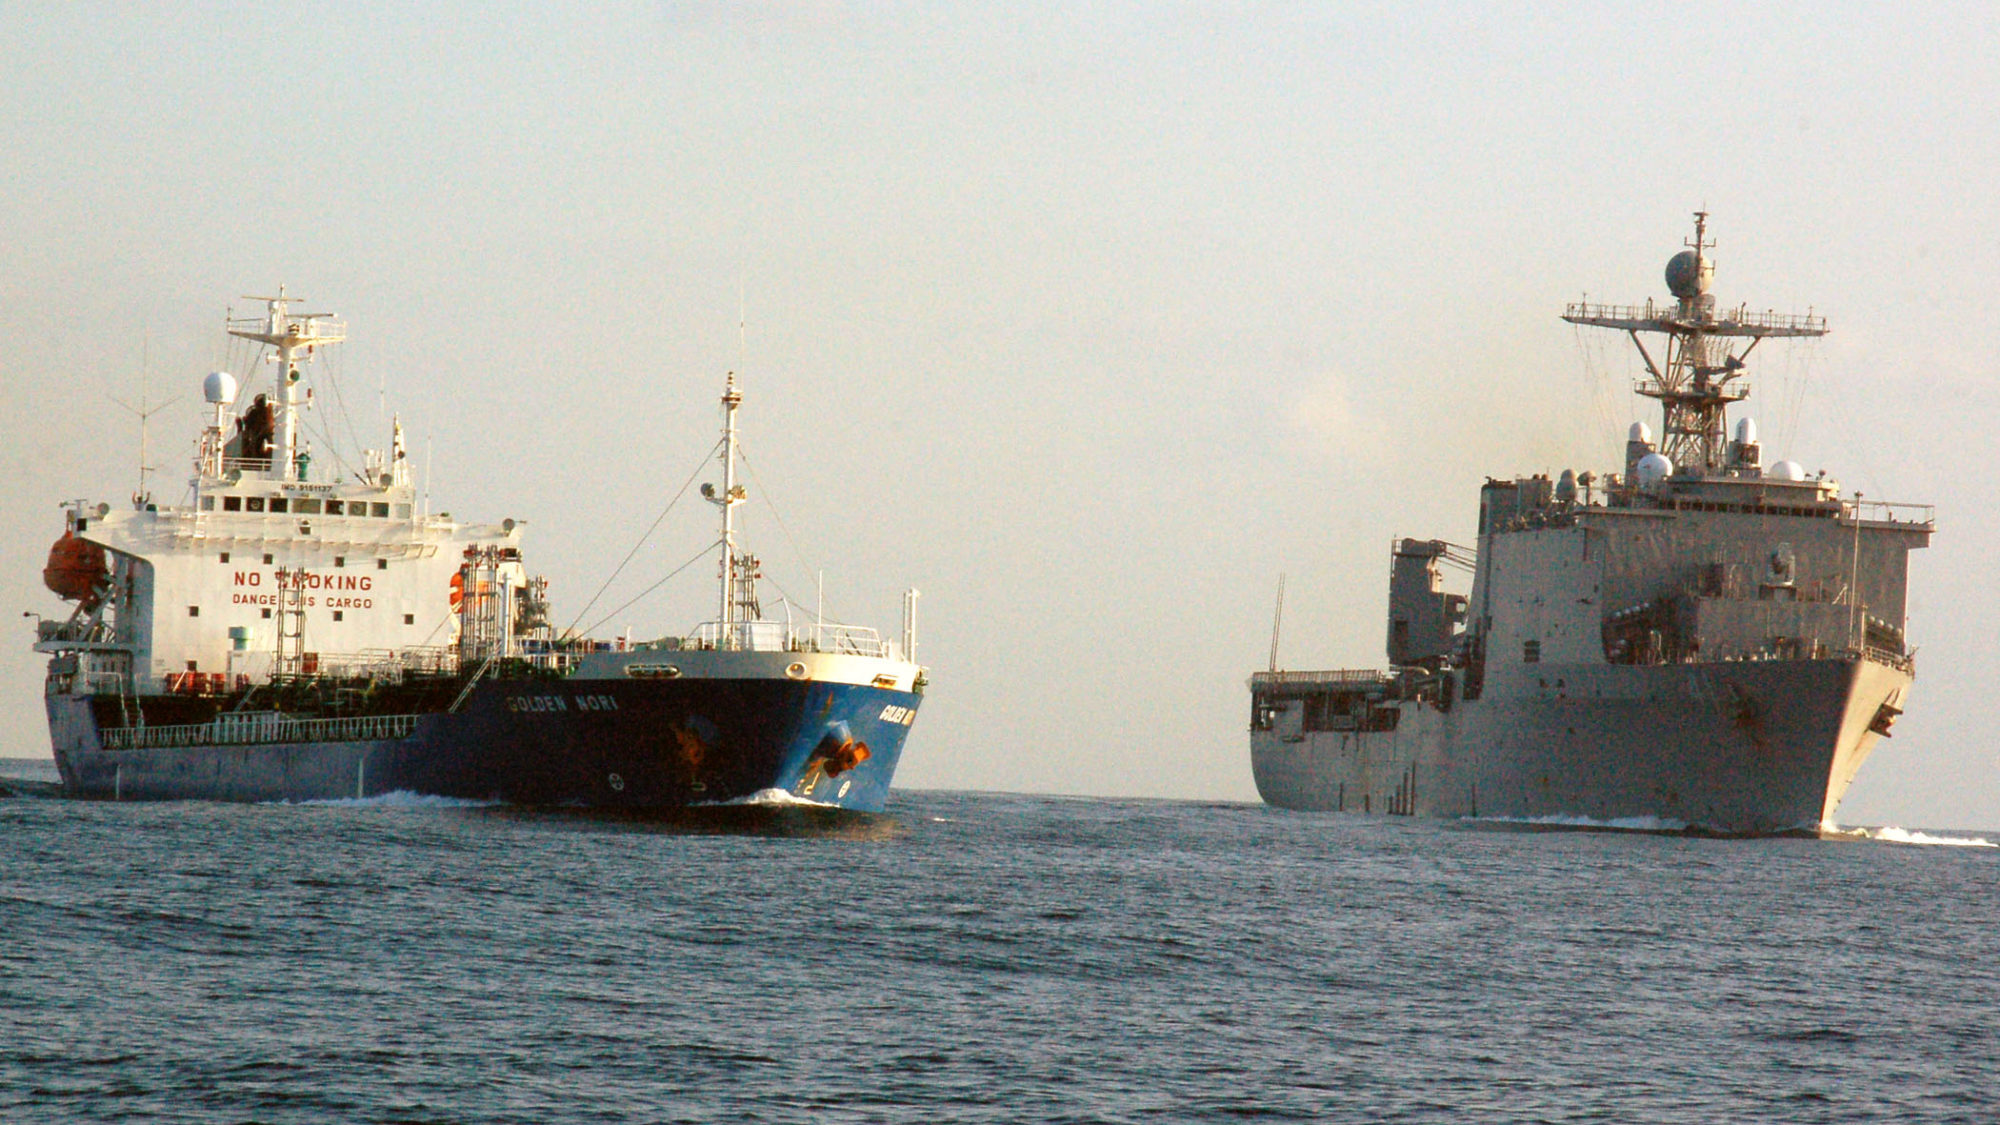 Two large US Navy ships on the sea